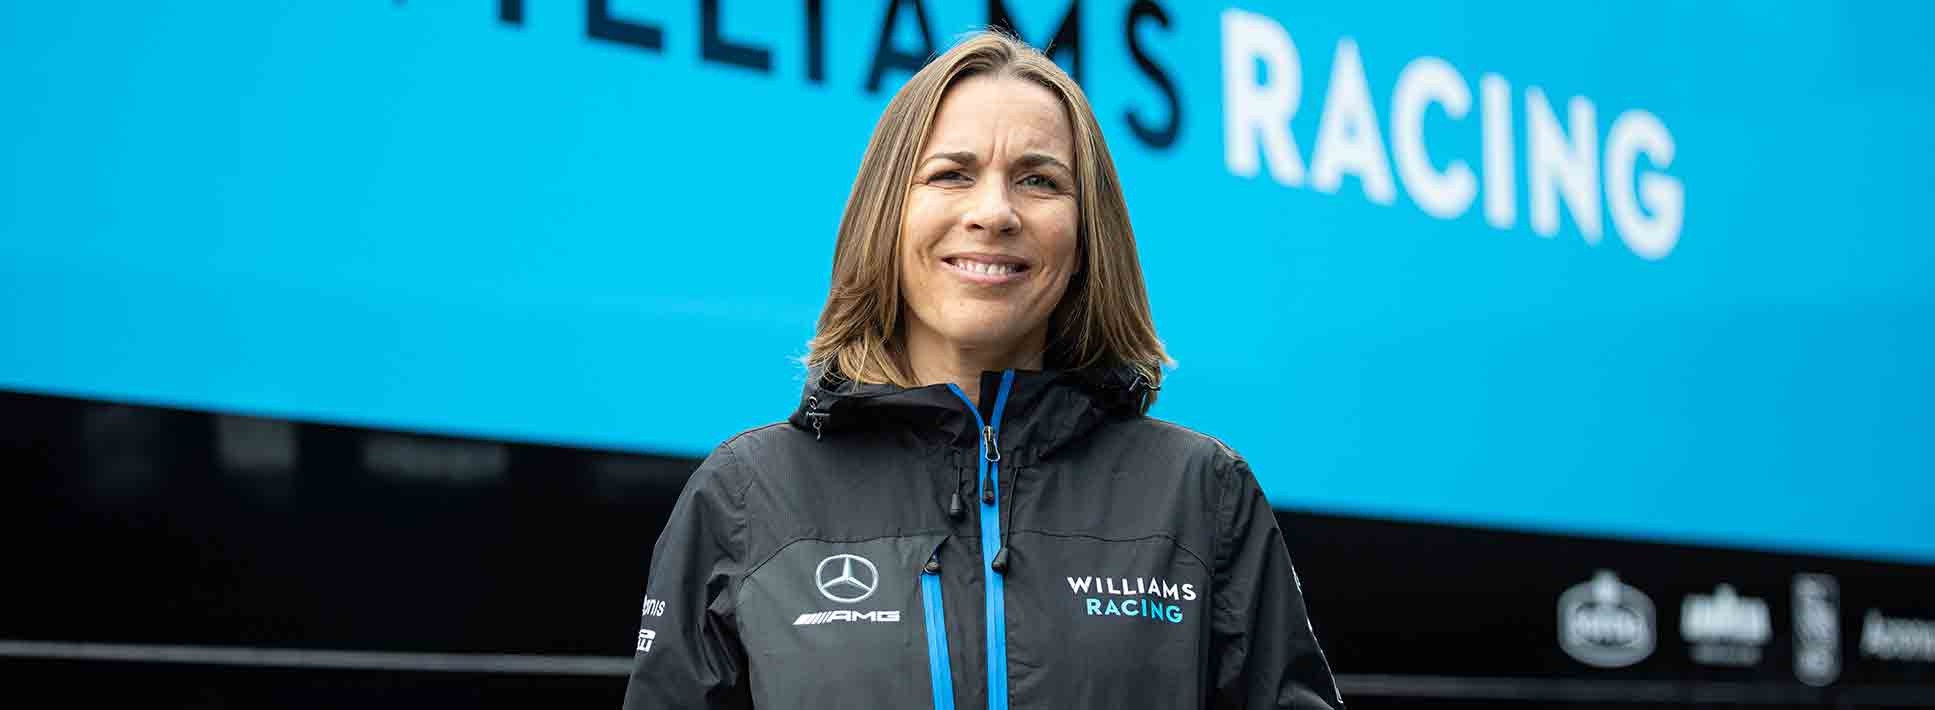 Claire Williams | Williams Racing